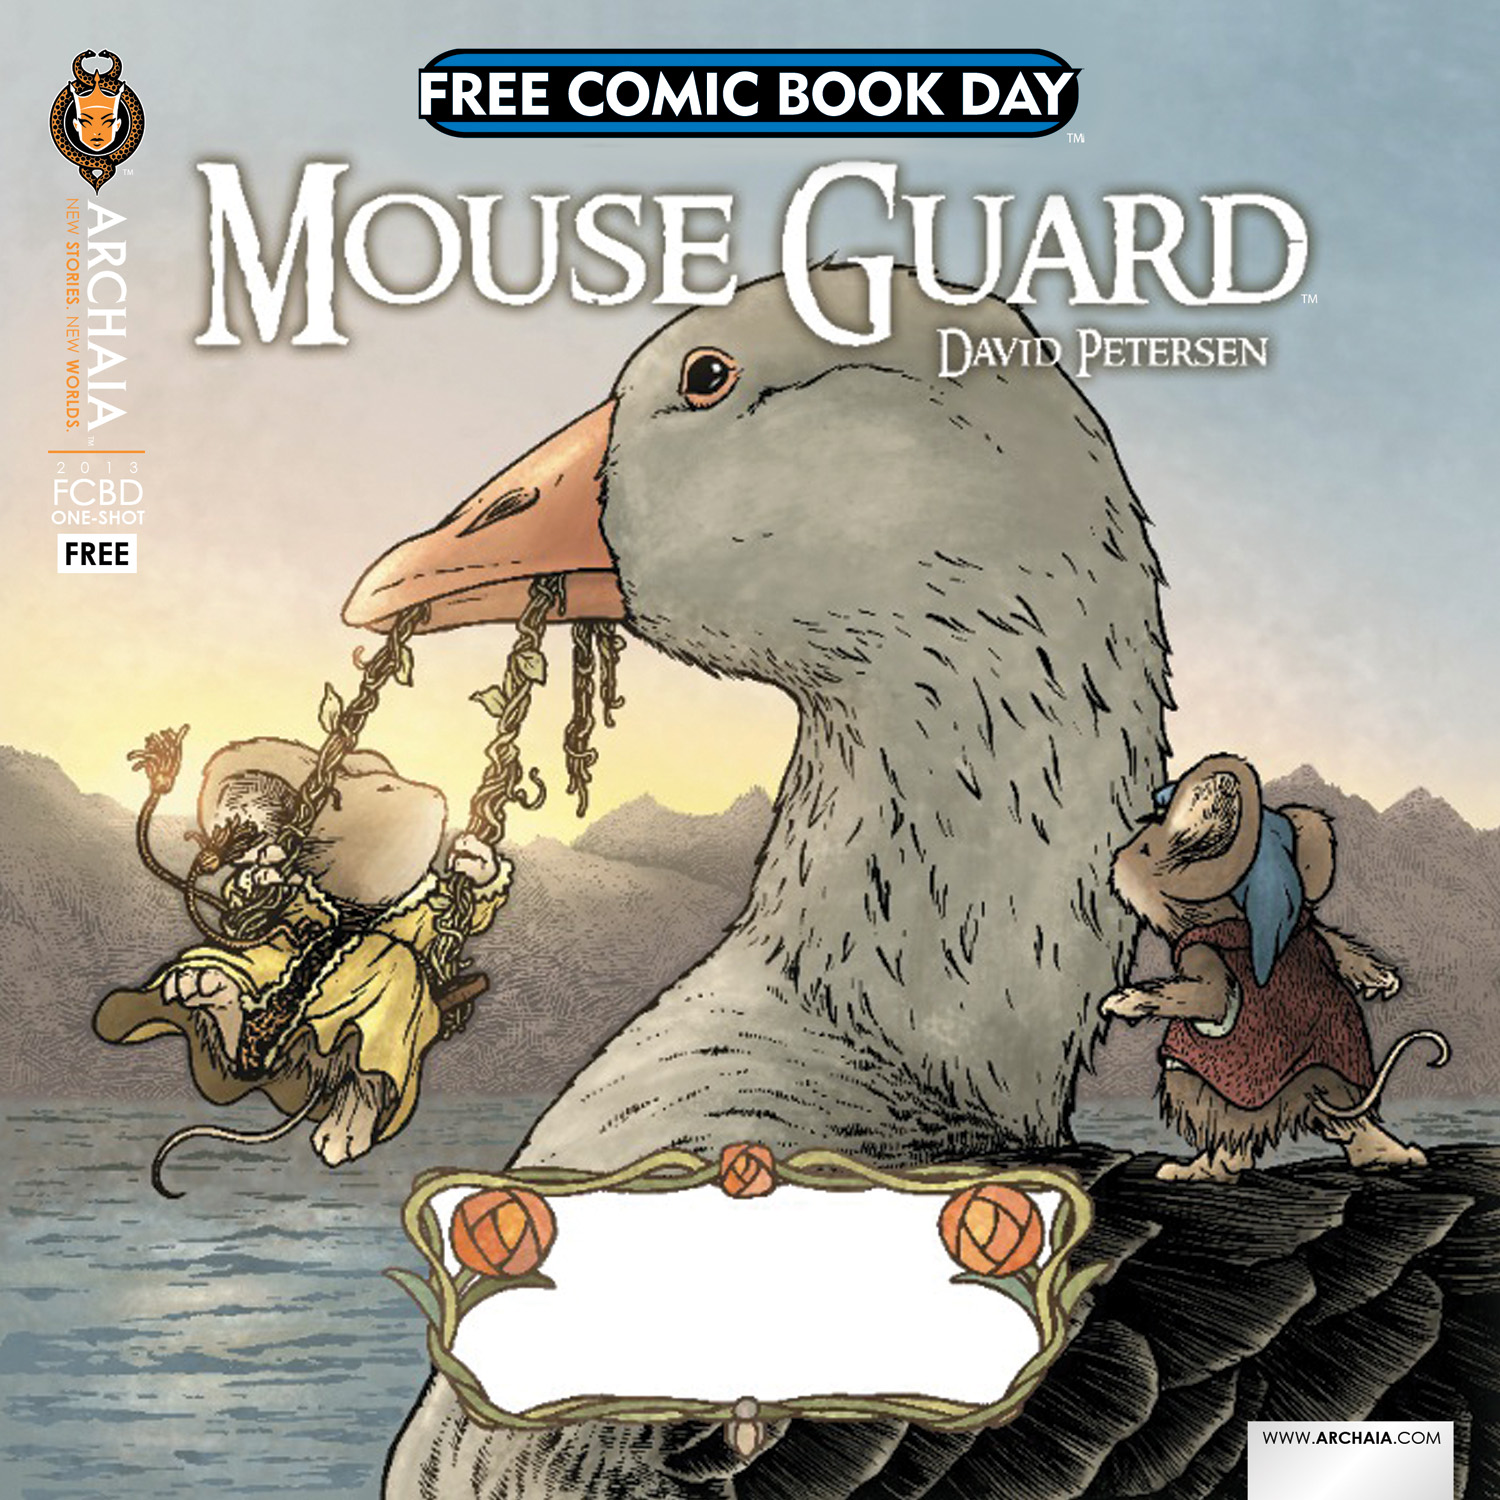 Free Comic Book Day 2013 is Here! May the Fourth be with You!